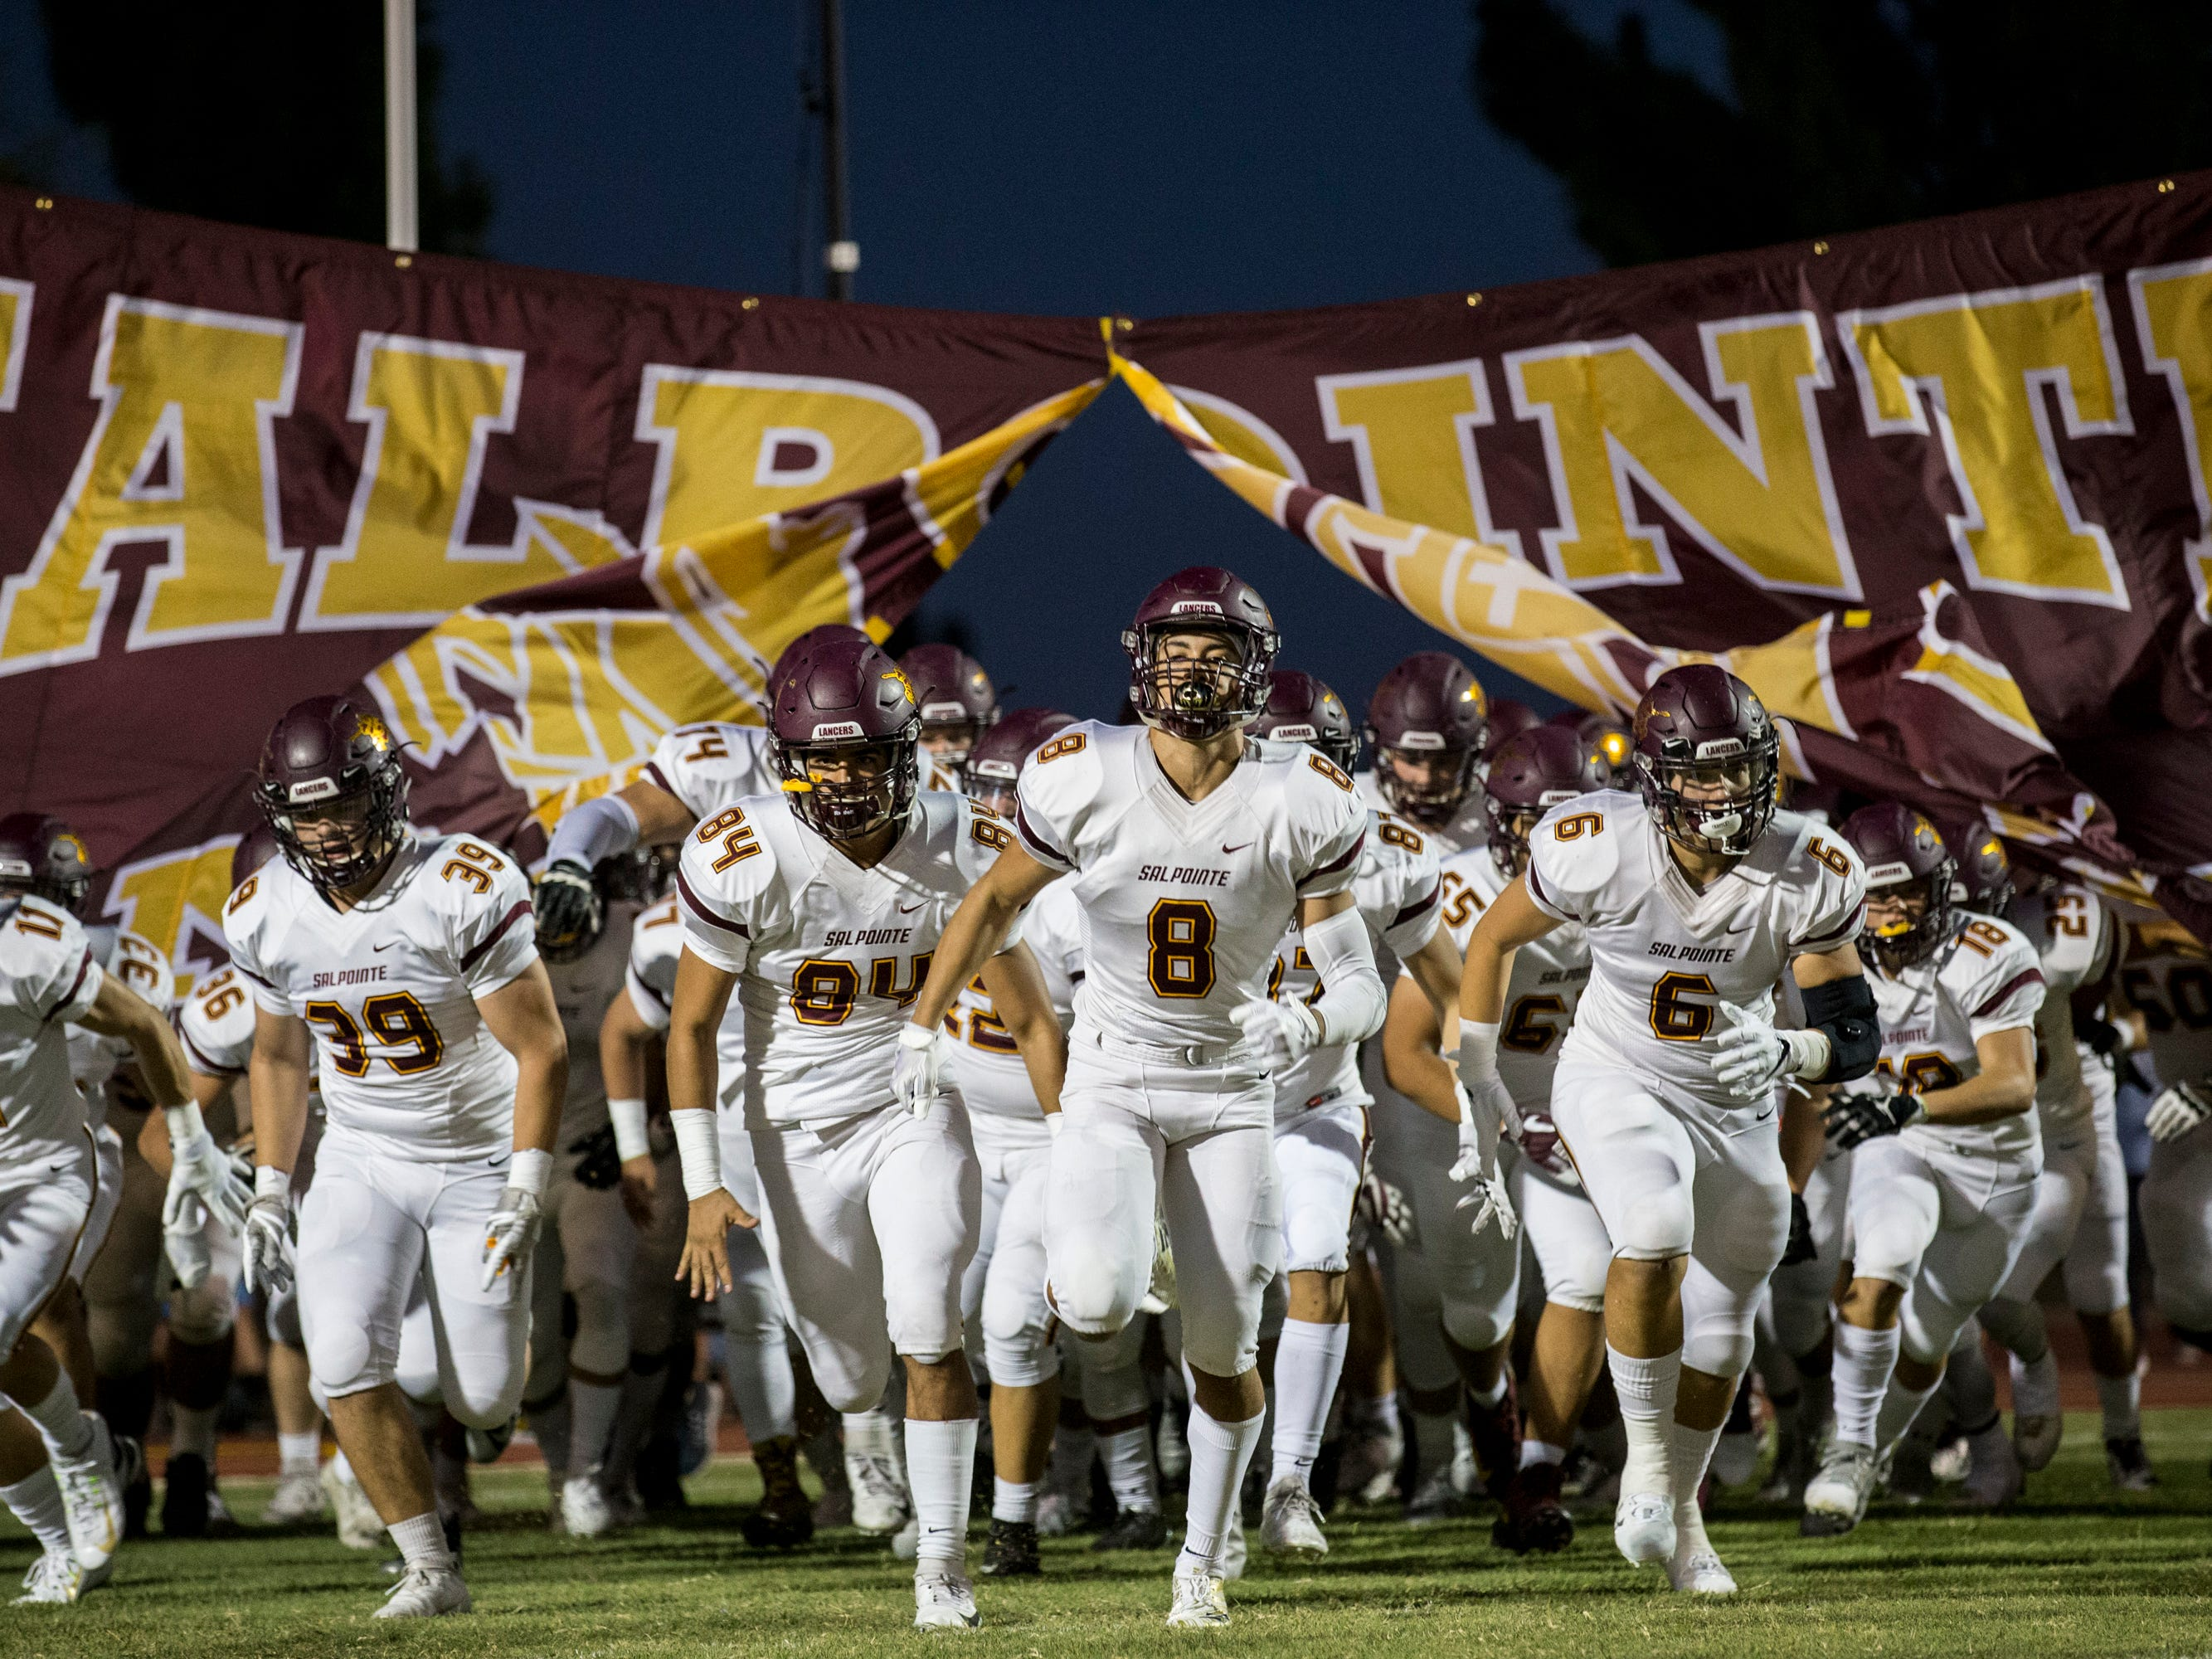 Salpointe takes the field before the game against Cactus on Friday, Sept. 14, 2018, at Cactus High School in Glendale, Ariz.